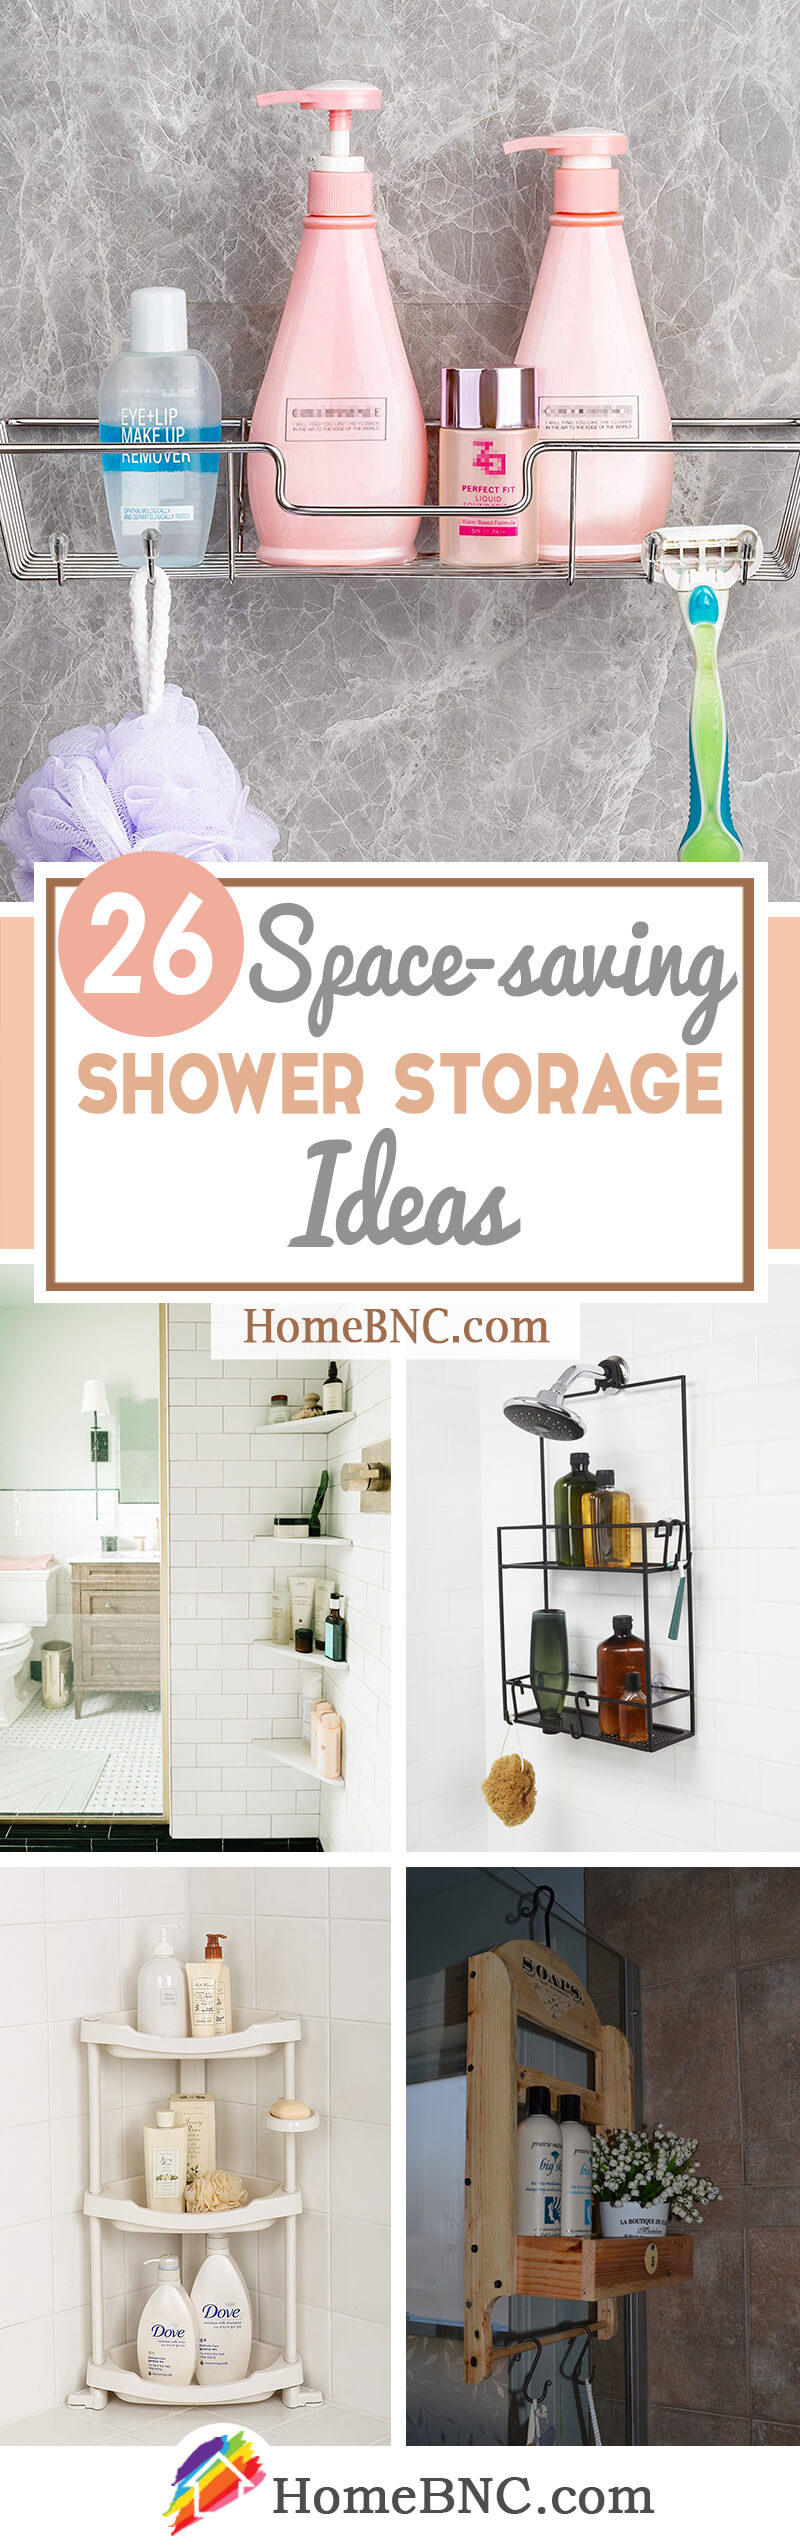 Shower Storage Ideas